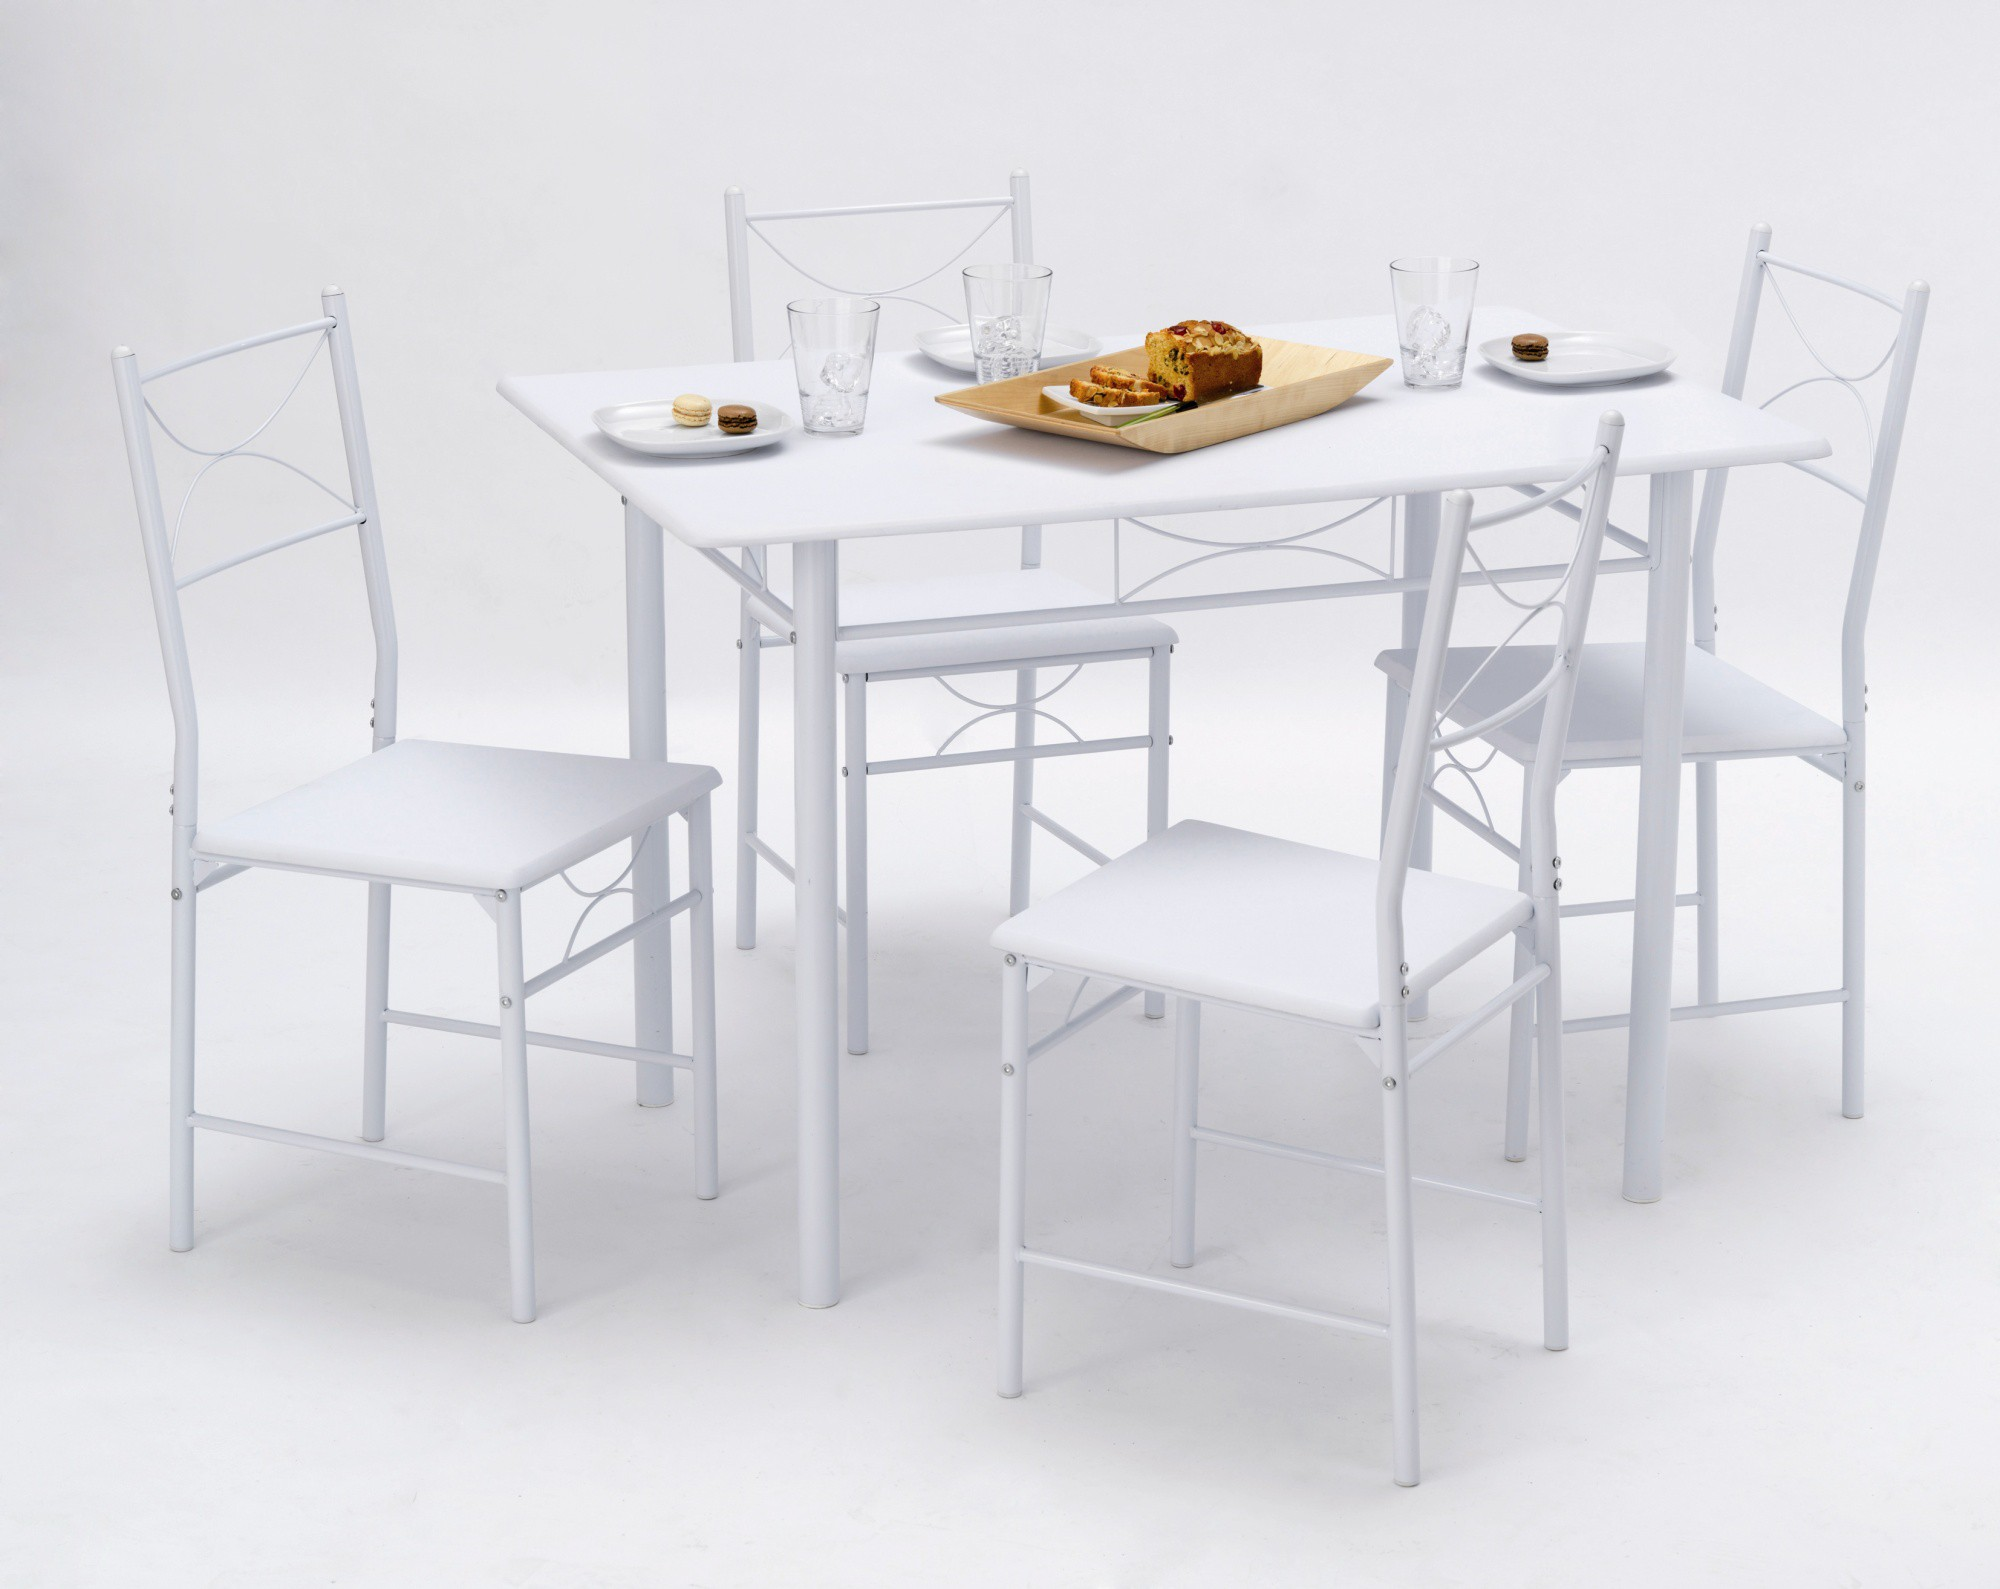 Table et chaise de cuisine moderne le monde de l a for Table de cuisine moderne